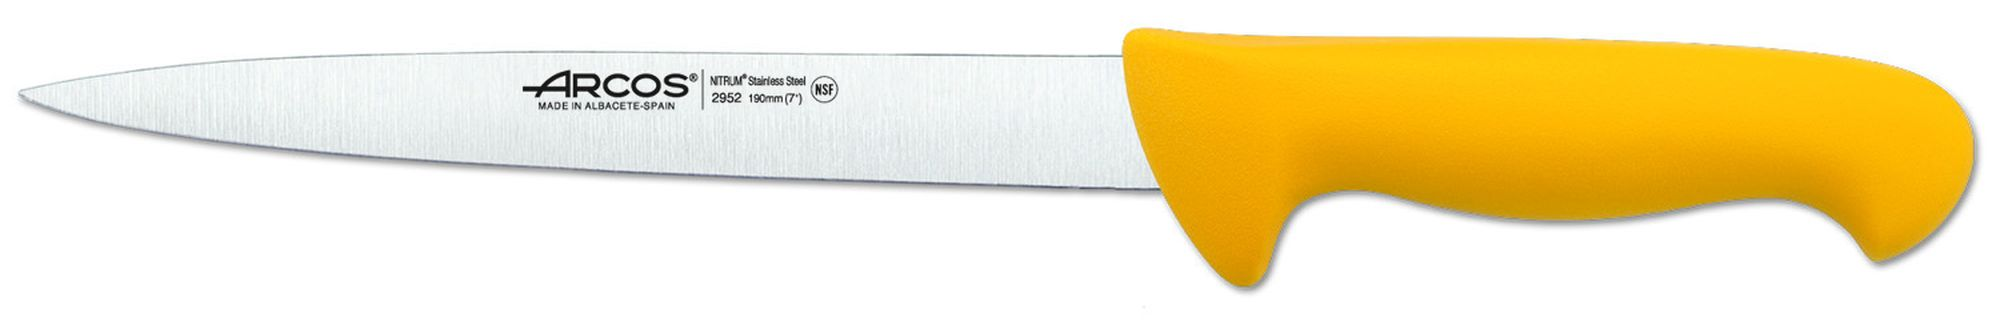 Cuchillo Fileteador Semiflexible Arcos ref.: 295200